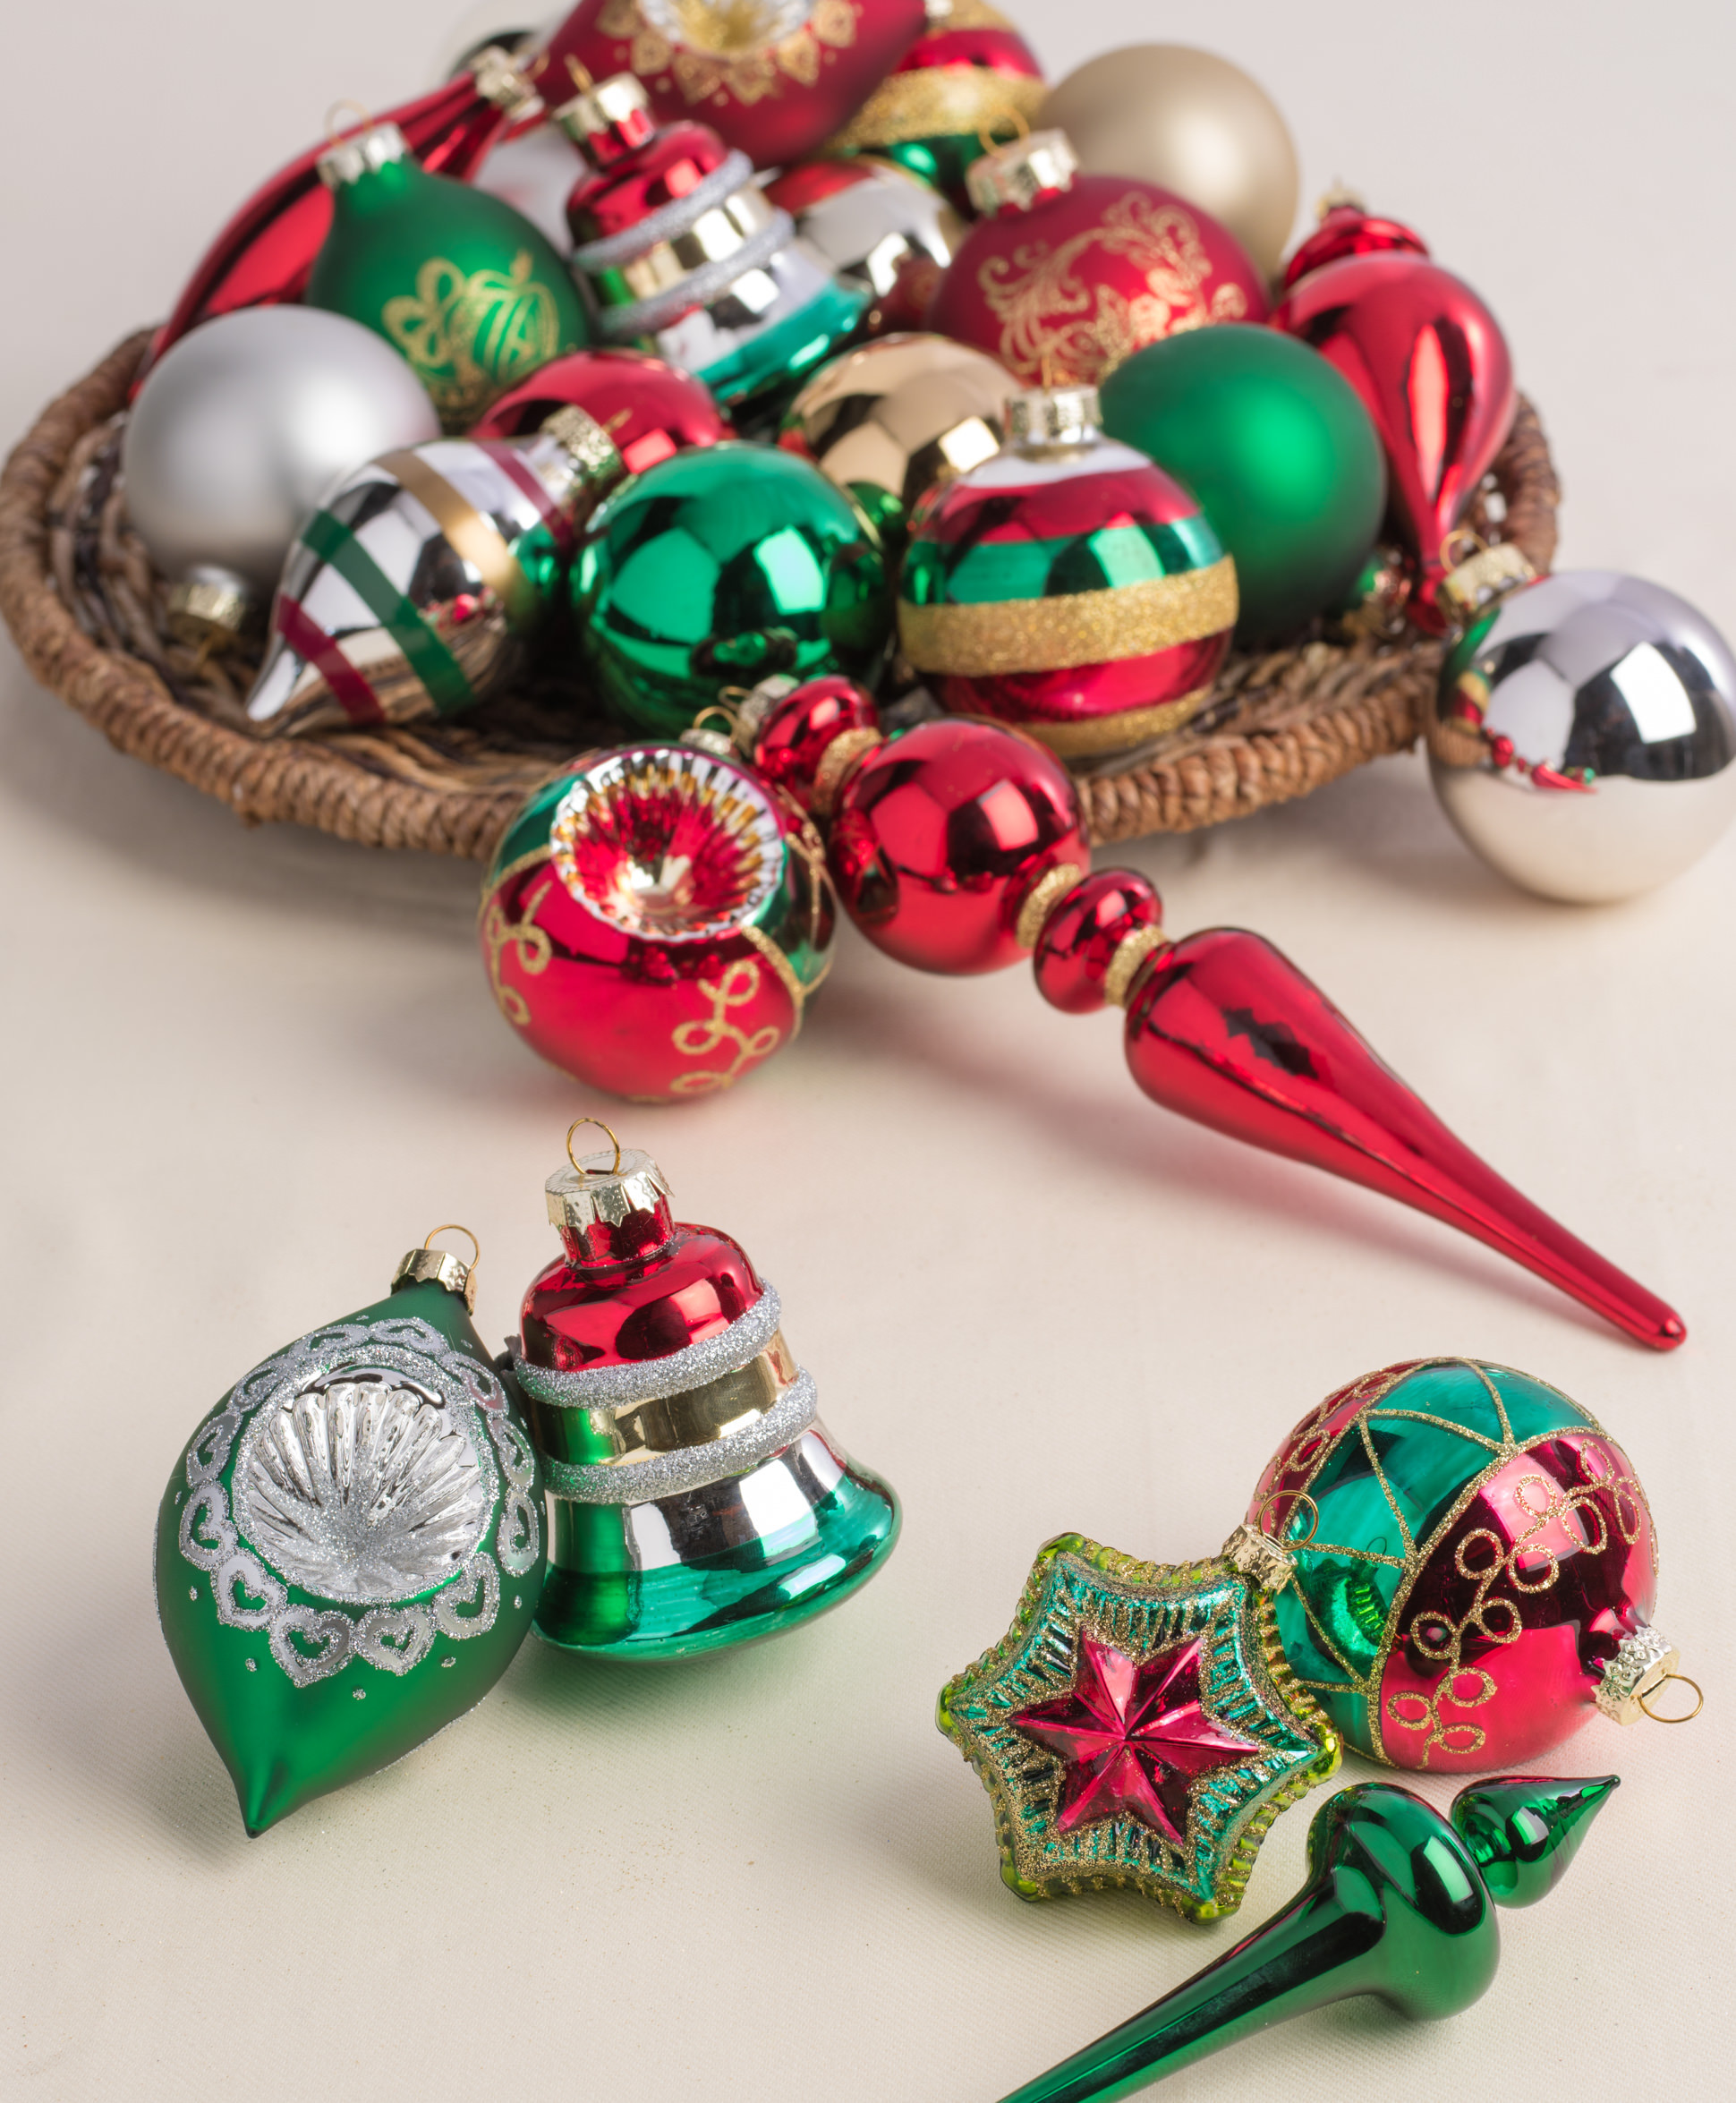 Merry & Bright Ornament Collection